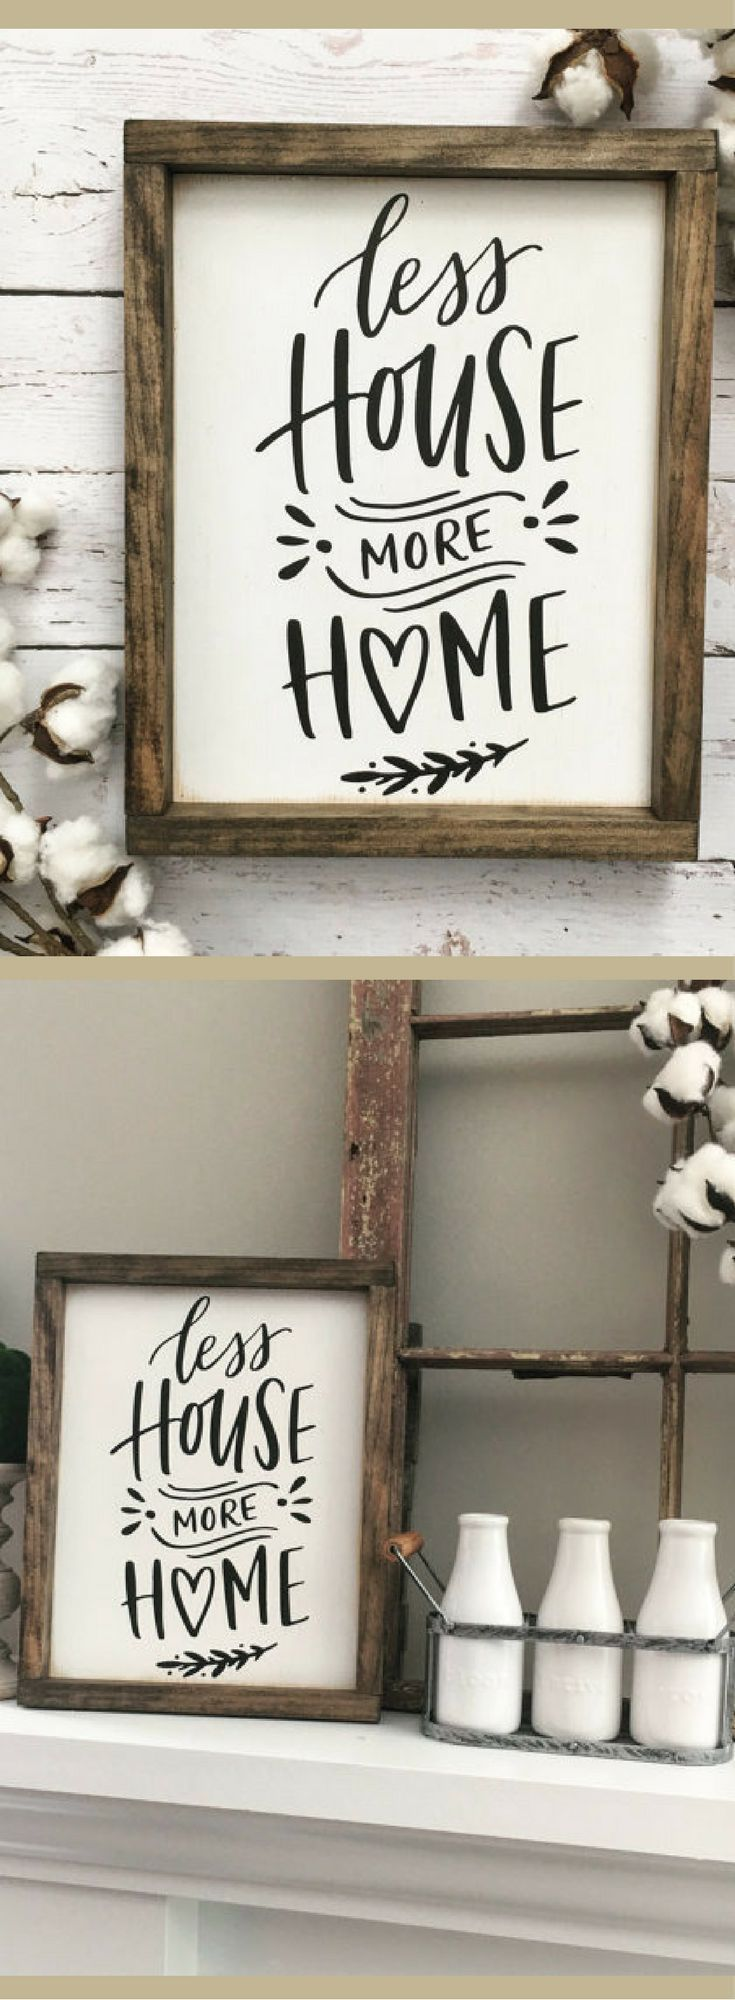 Less House More Home Sign, Farmhouse Sign, Rustic Wood Sign, Housewarming Gift, Rustic Gallery Wall, Framed Wood Sign, Farm Home Sign, Family decor #affiliatelink